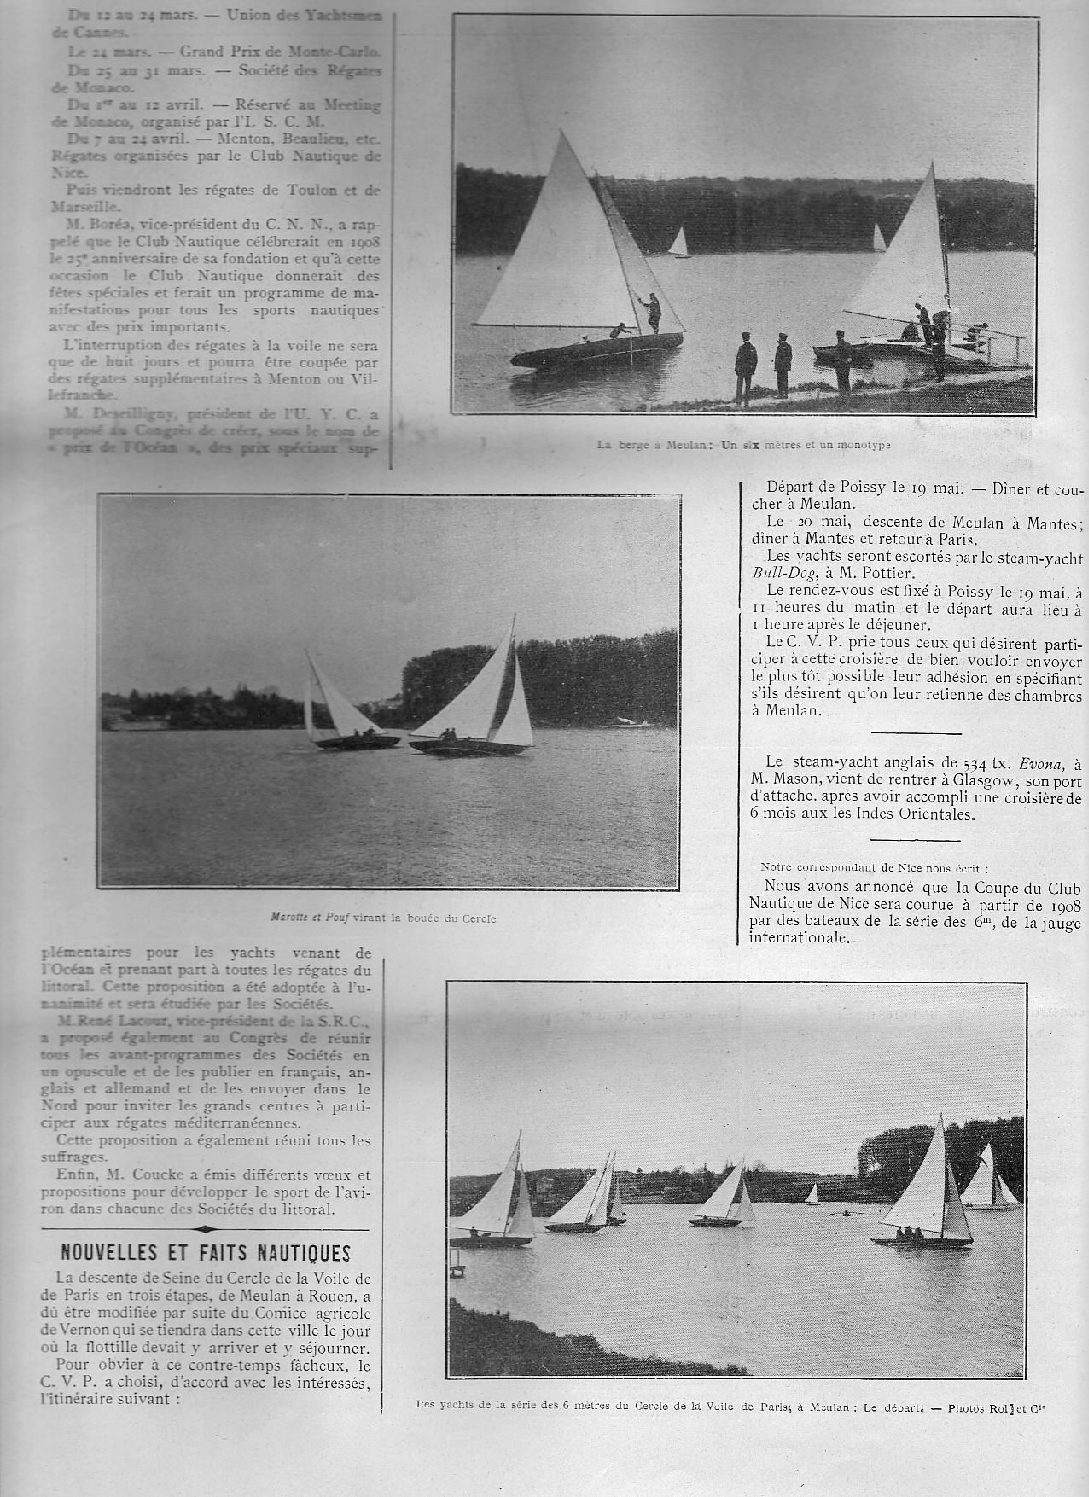 Le Yacht, May 1907